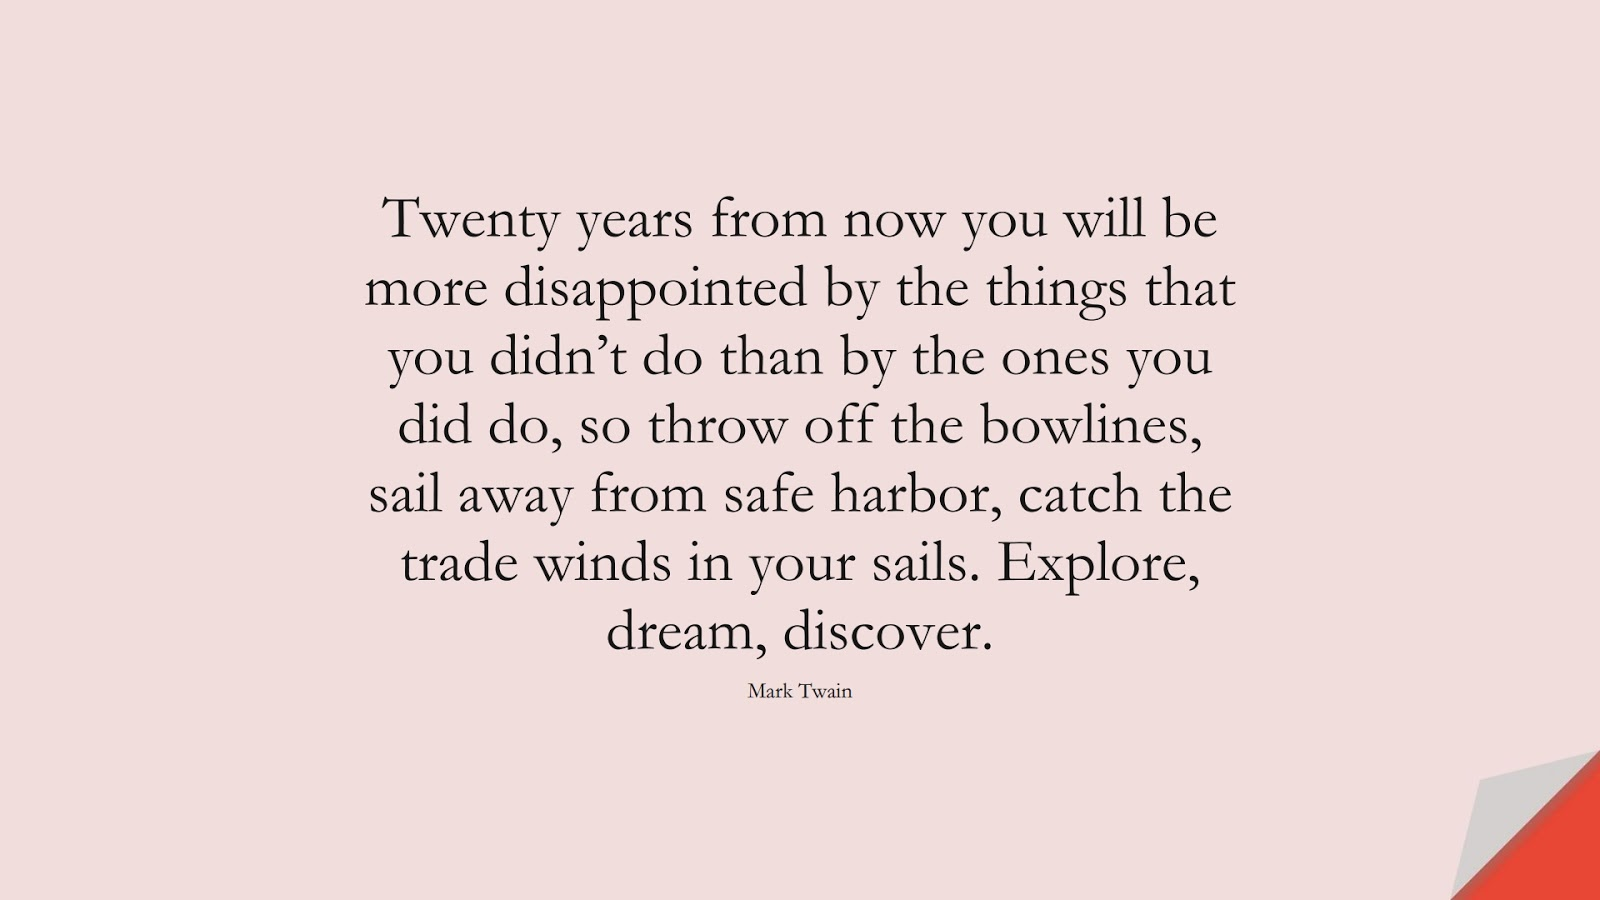 Twenty years from now you will be more disappointed by the things that you didn't do than by the ones you did do, so throw off the bowlines, sail away from safe harbor, catch the trade winds in your sails. Explore, dream, discover. (Mark Twain);  #MotivationalQuotes